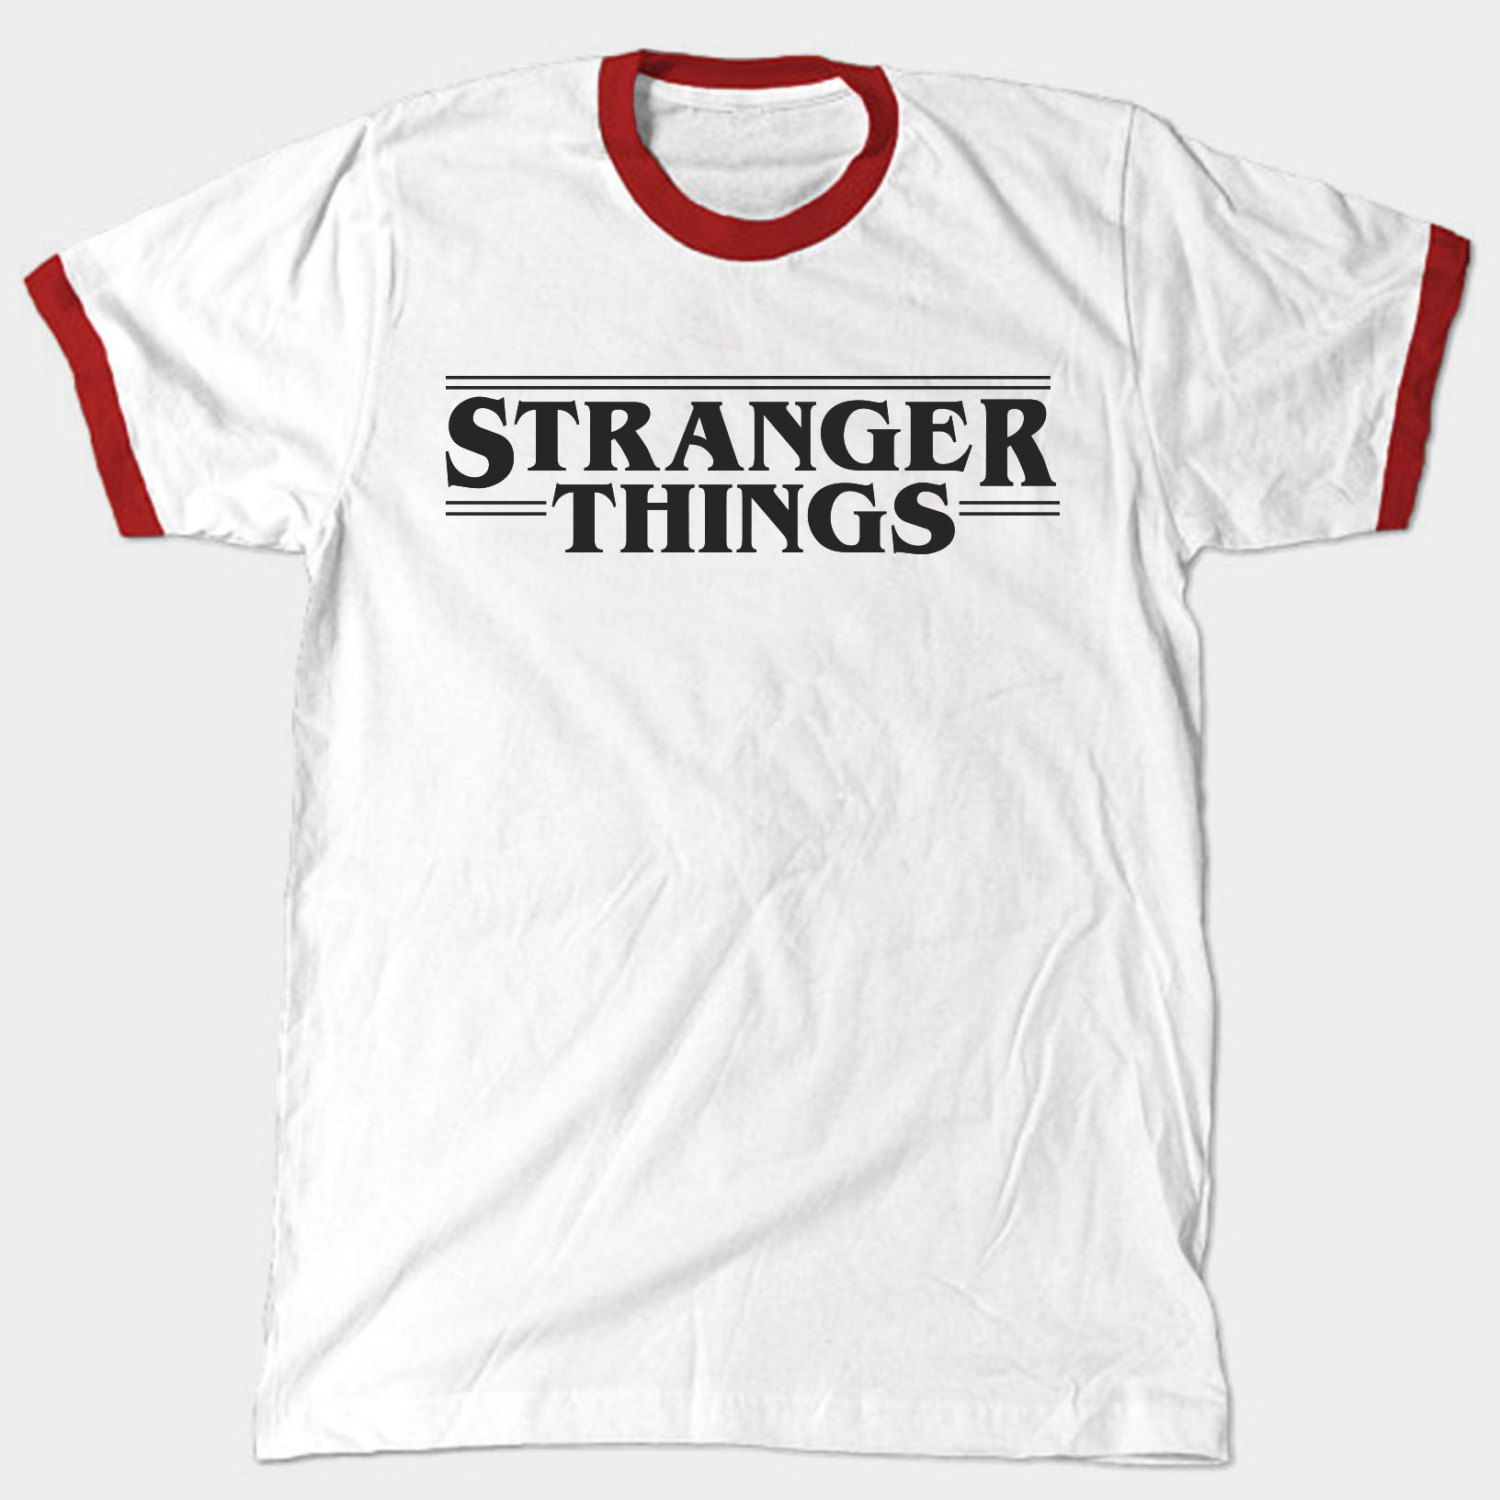 stranger things ringer by fanthreads on etsy style pinterest stranger things etsy and. Black Bedroom Furniture Sets. Home Design Ideas